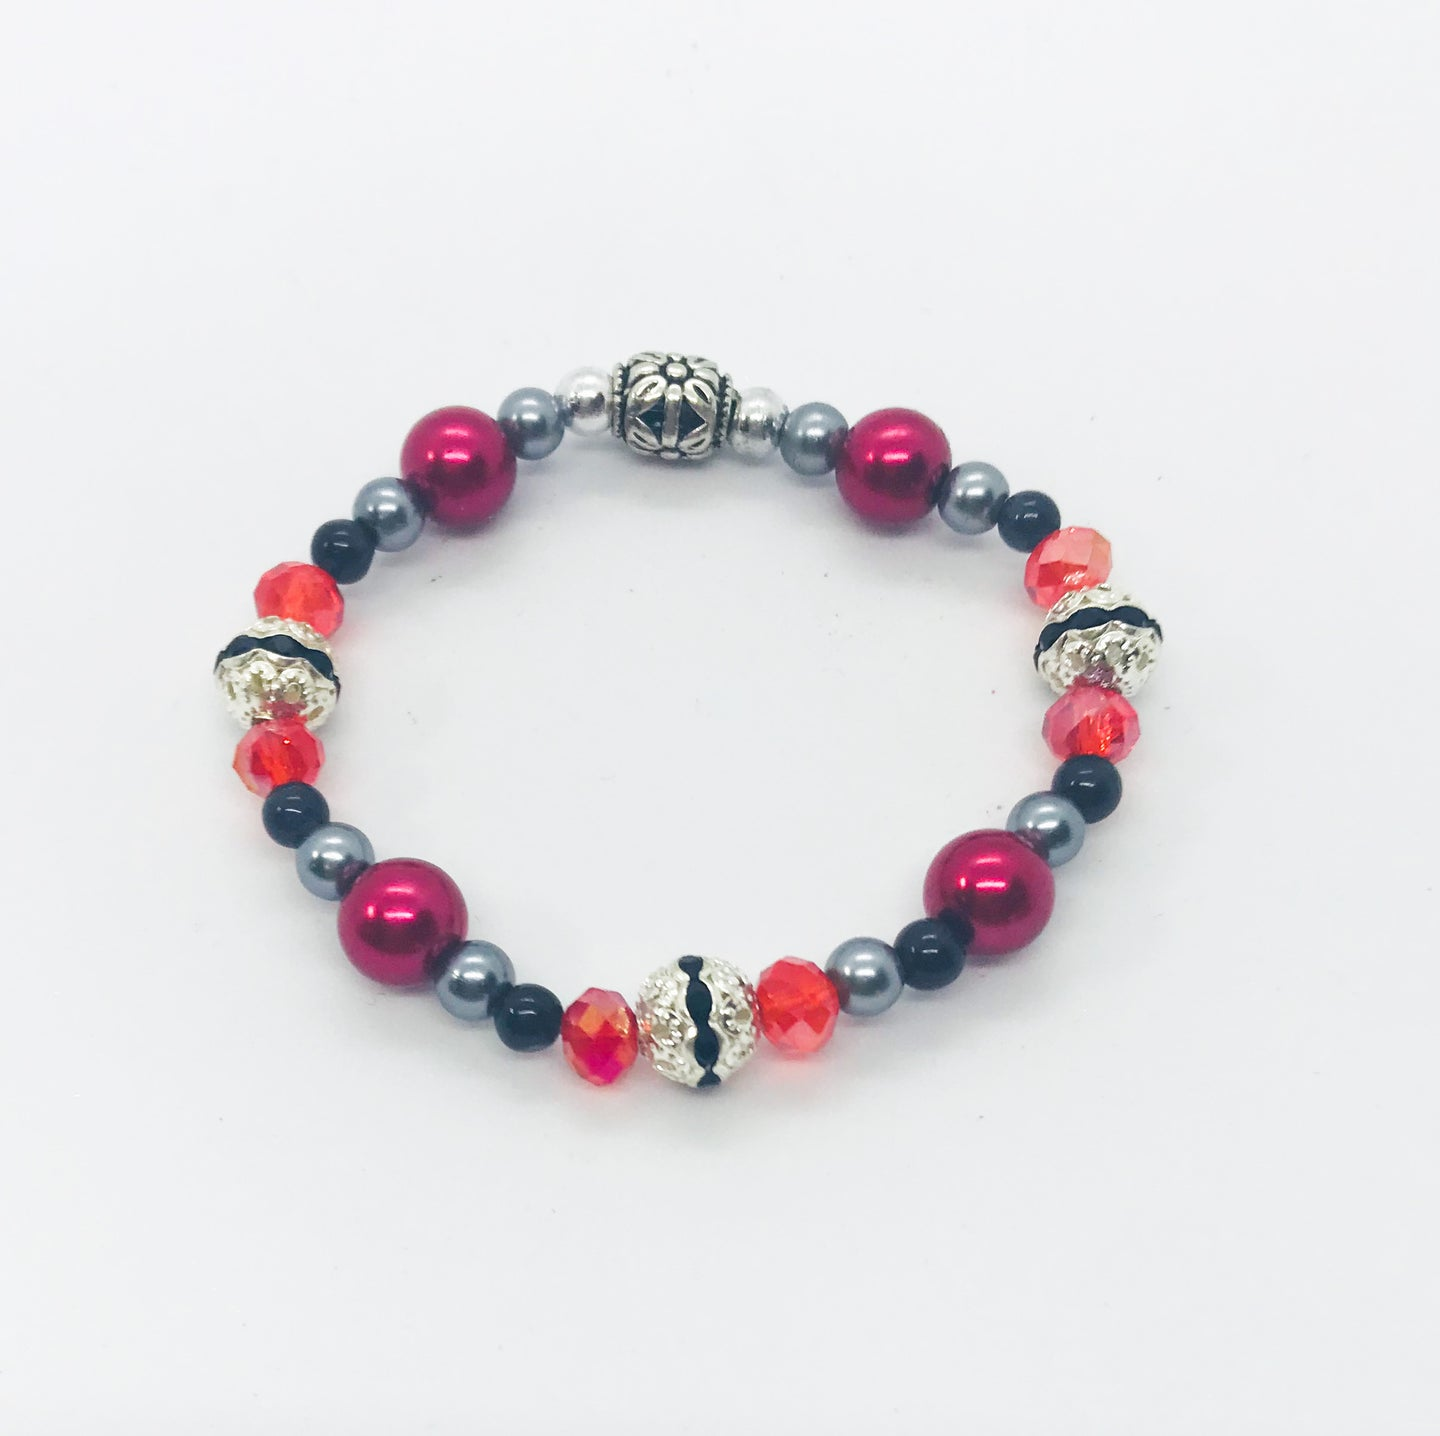 Glass Bead Stretchy Bracelet - B610